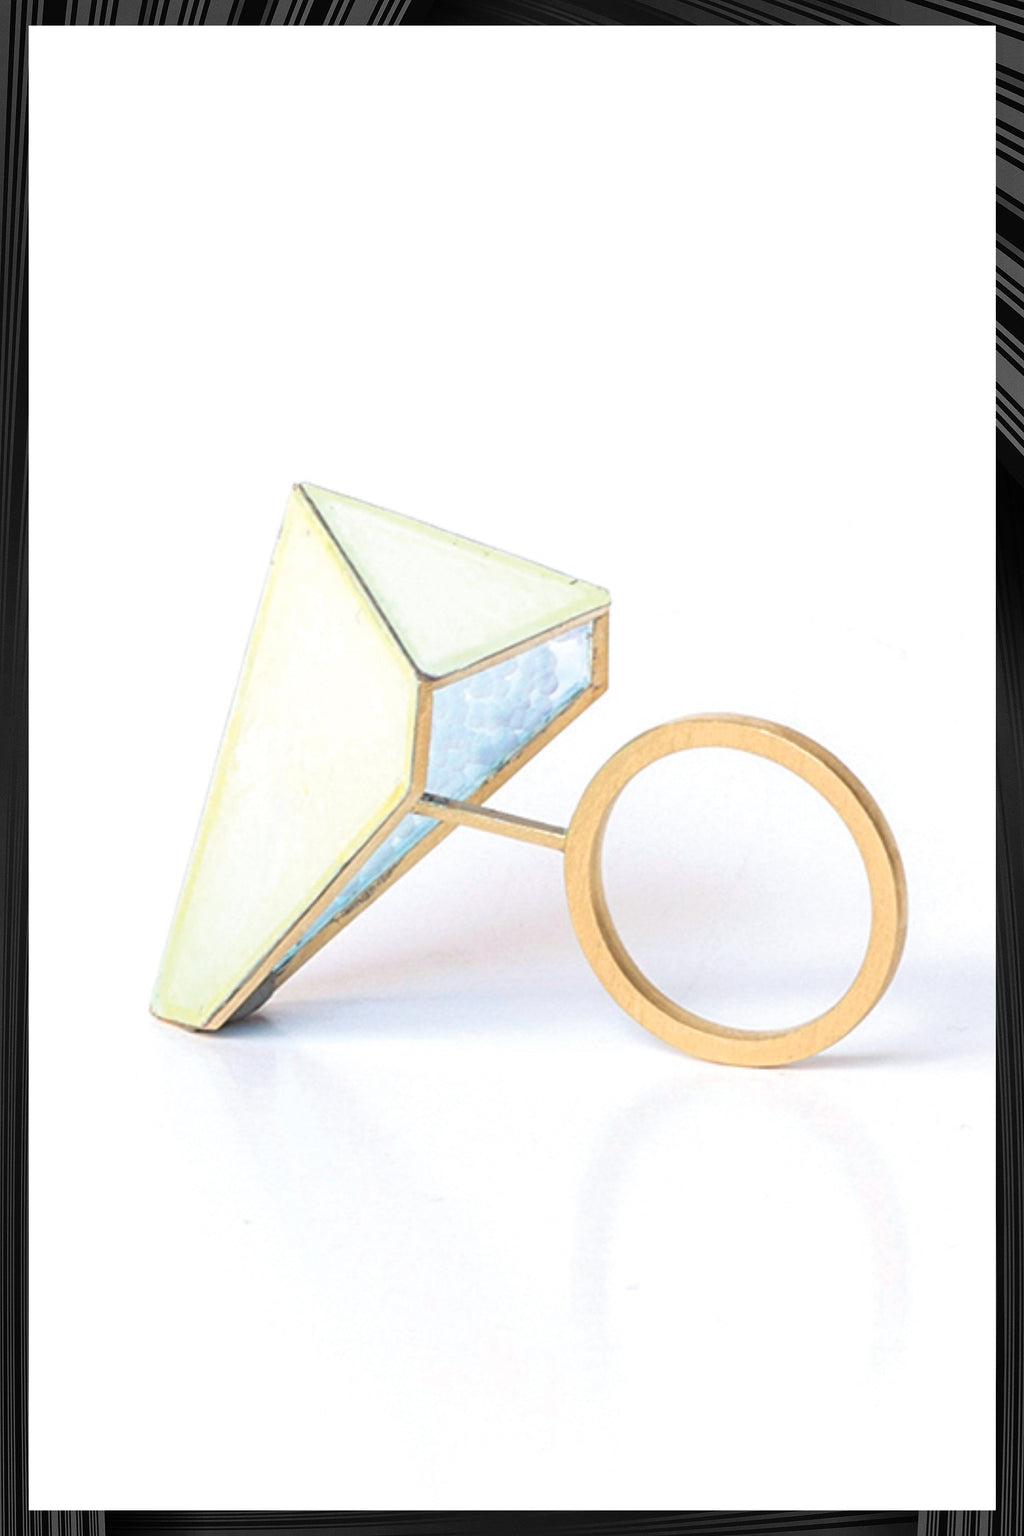 Periscope Ring | Free Delivery - 2-3 Week Shipping